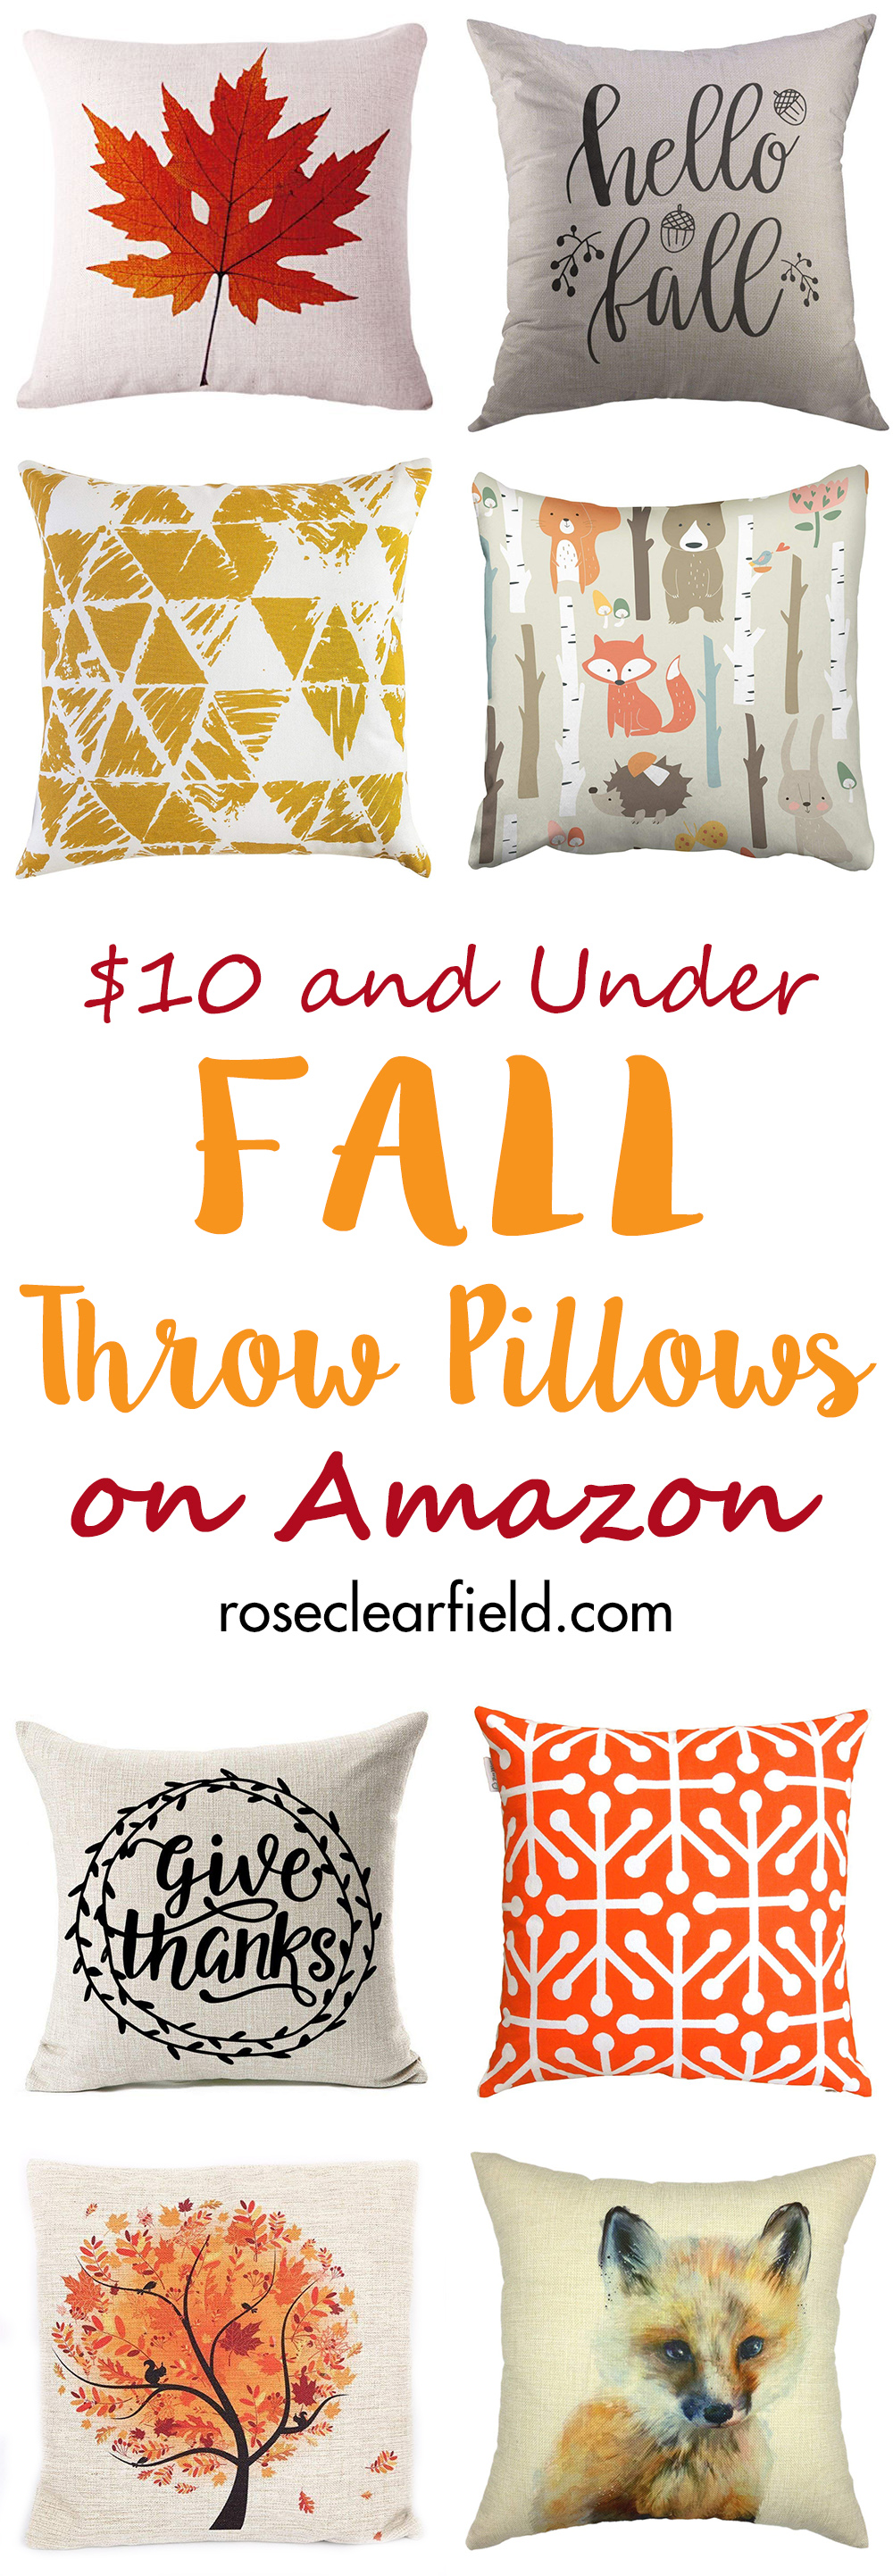 $10 and Under Fall Throw Pillows on Amazon | http://www.roseclearfield.com